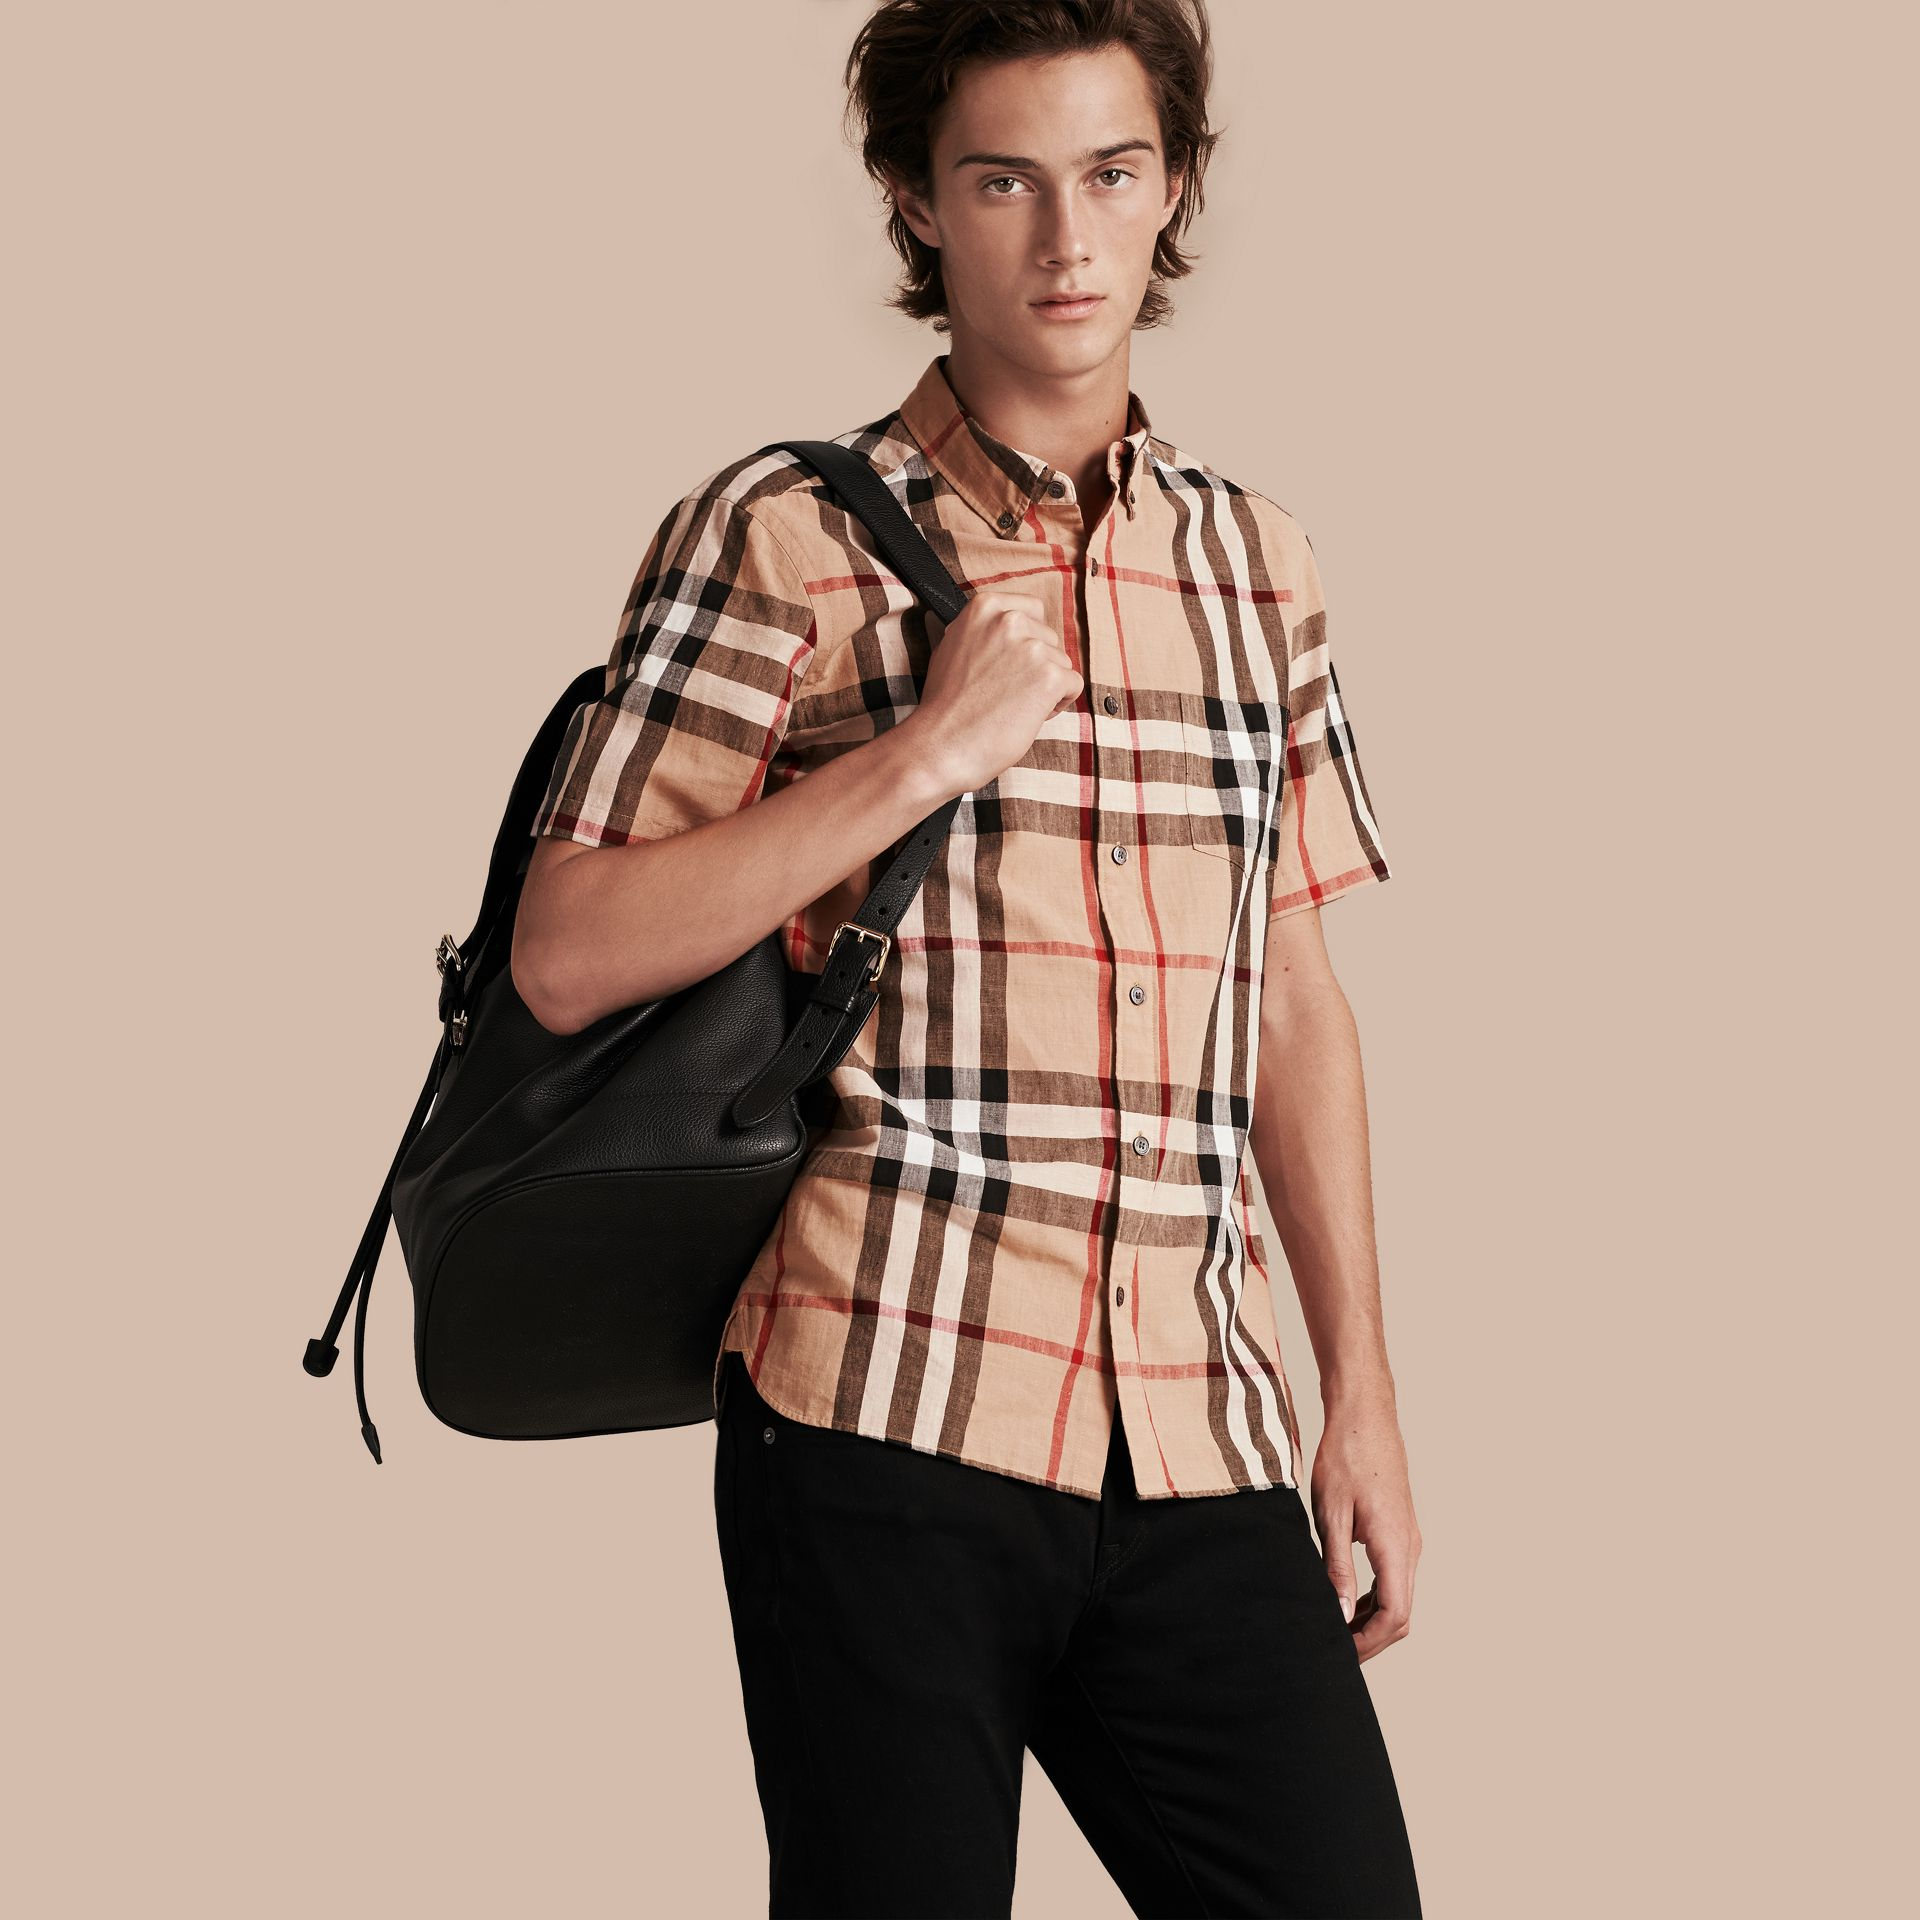 Camel Short-sleeved Check Linen Cotton Shirt Camel - gallery image 1